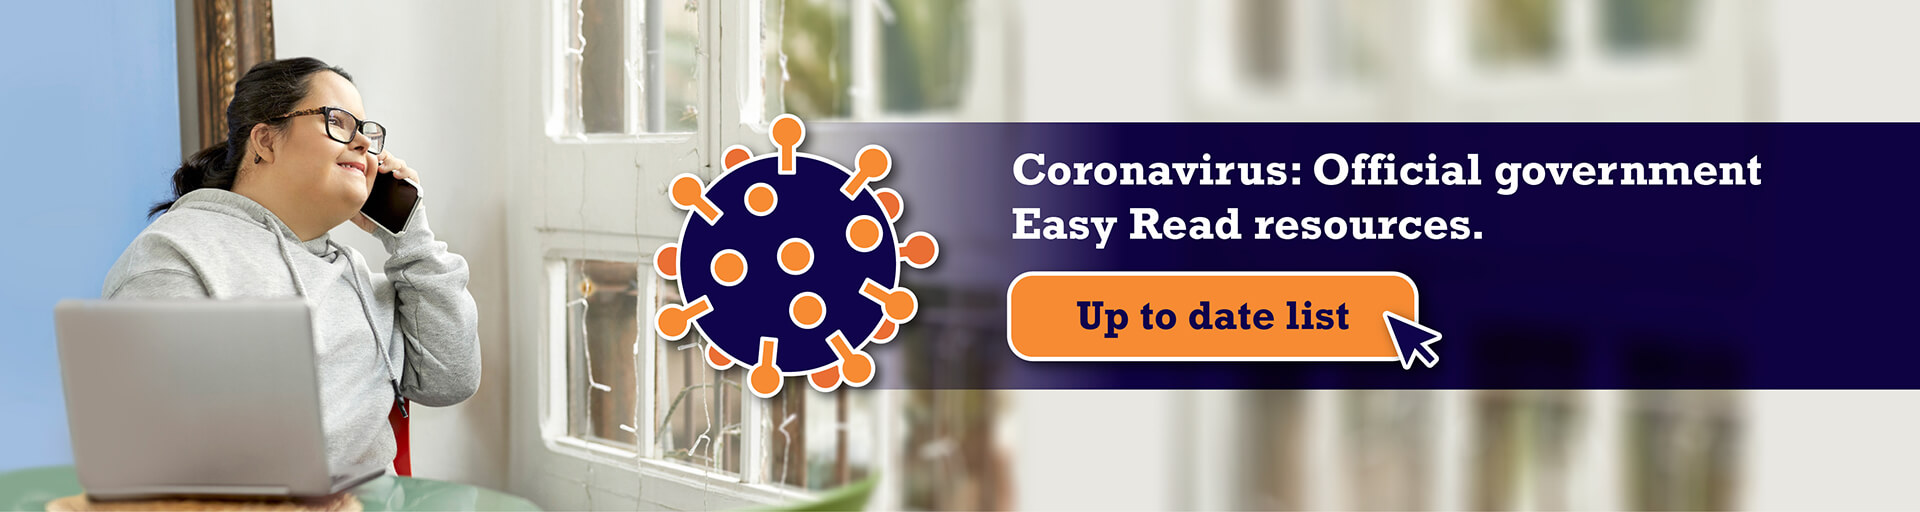 Coronavirus: Offficial government Easy Read resources. Up to date list.